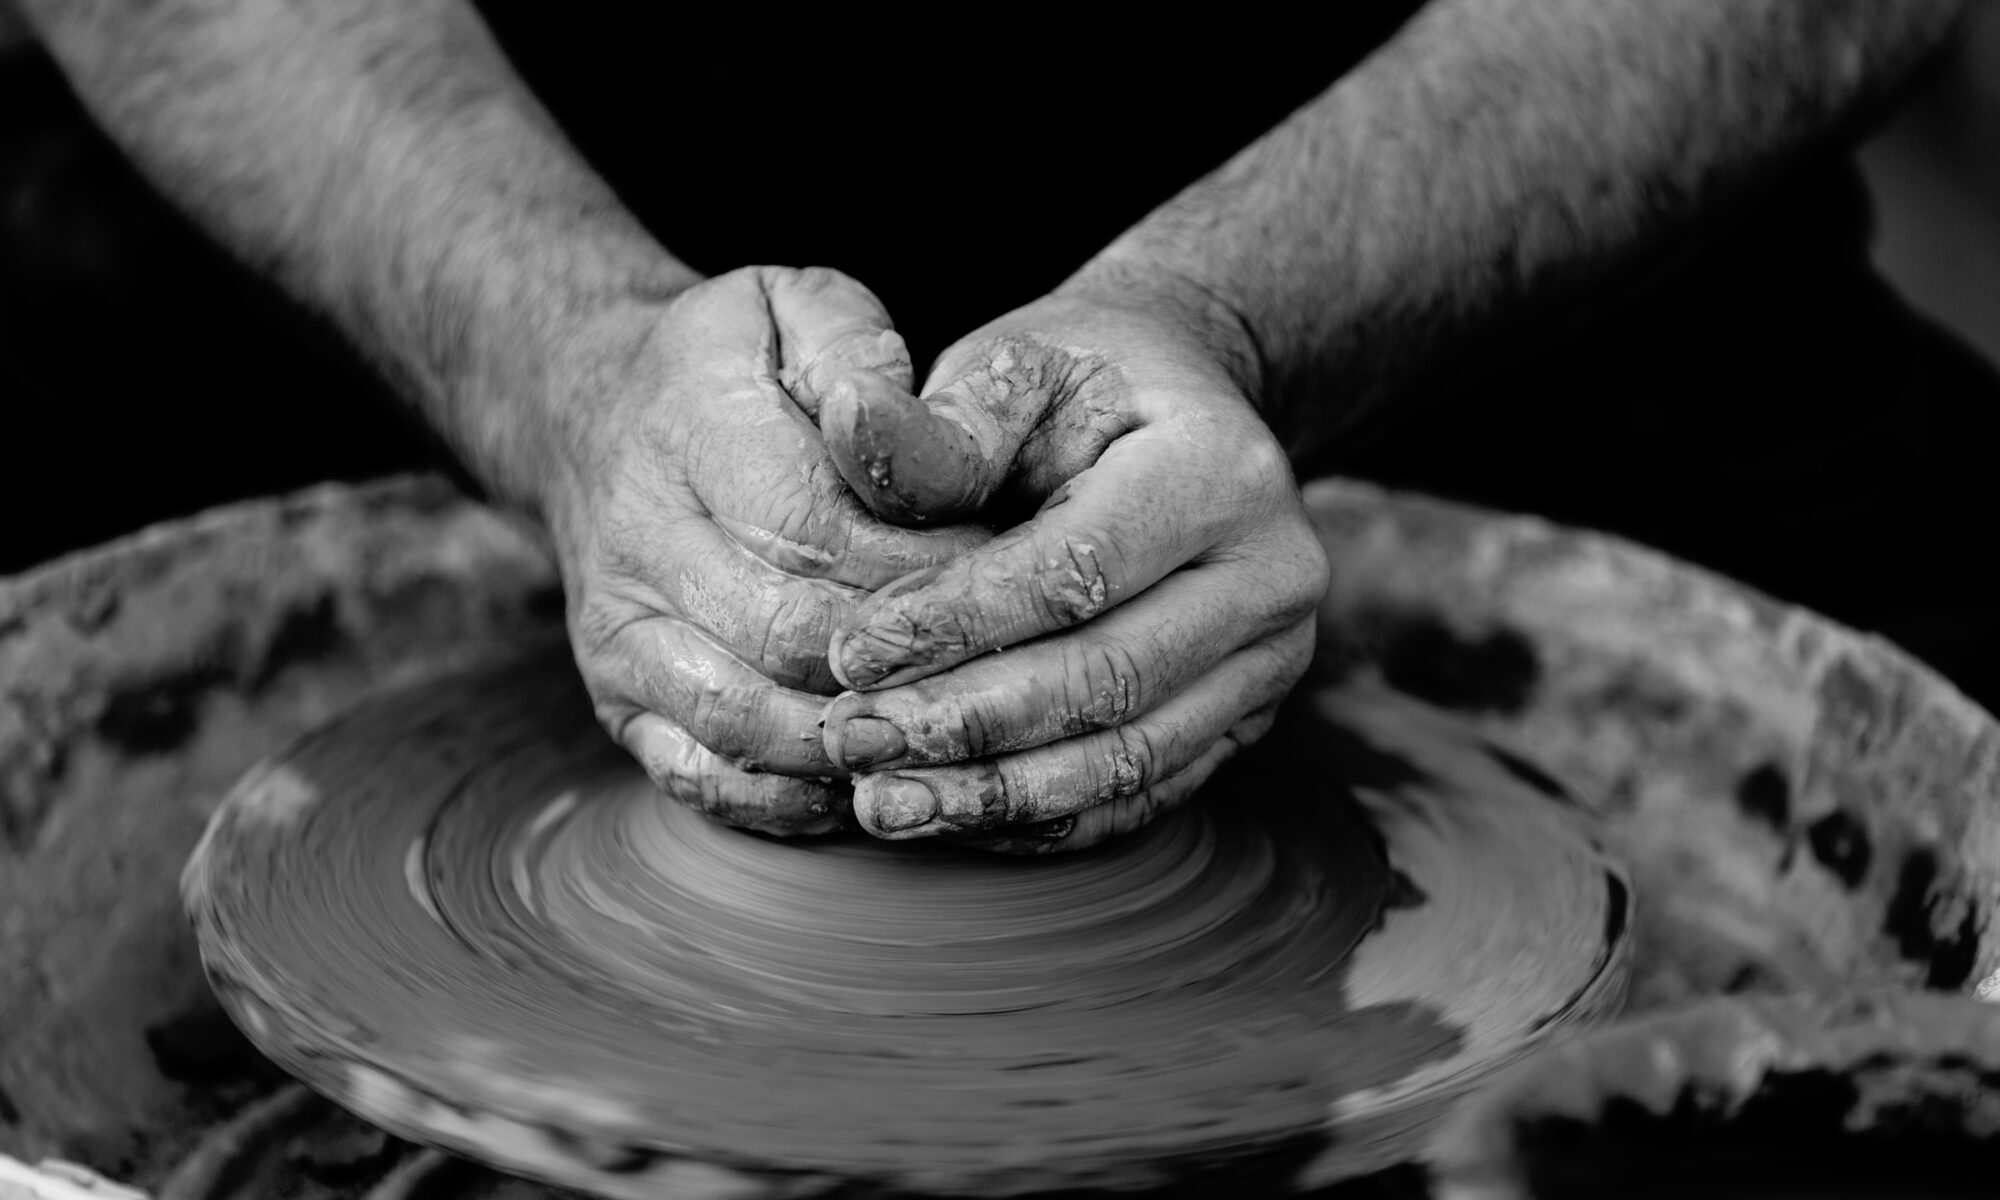 Hands and clay on potters wheel